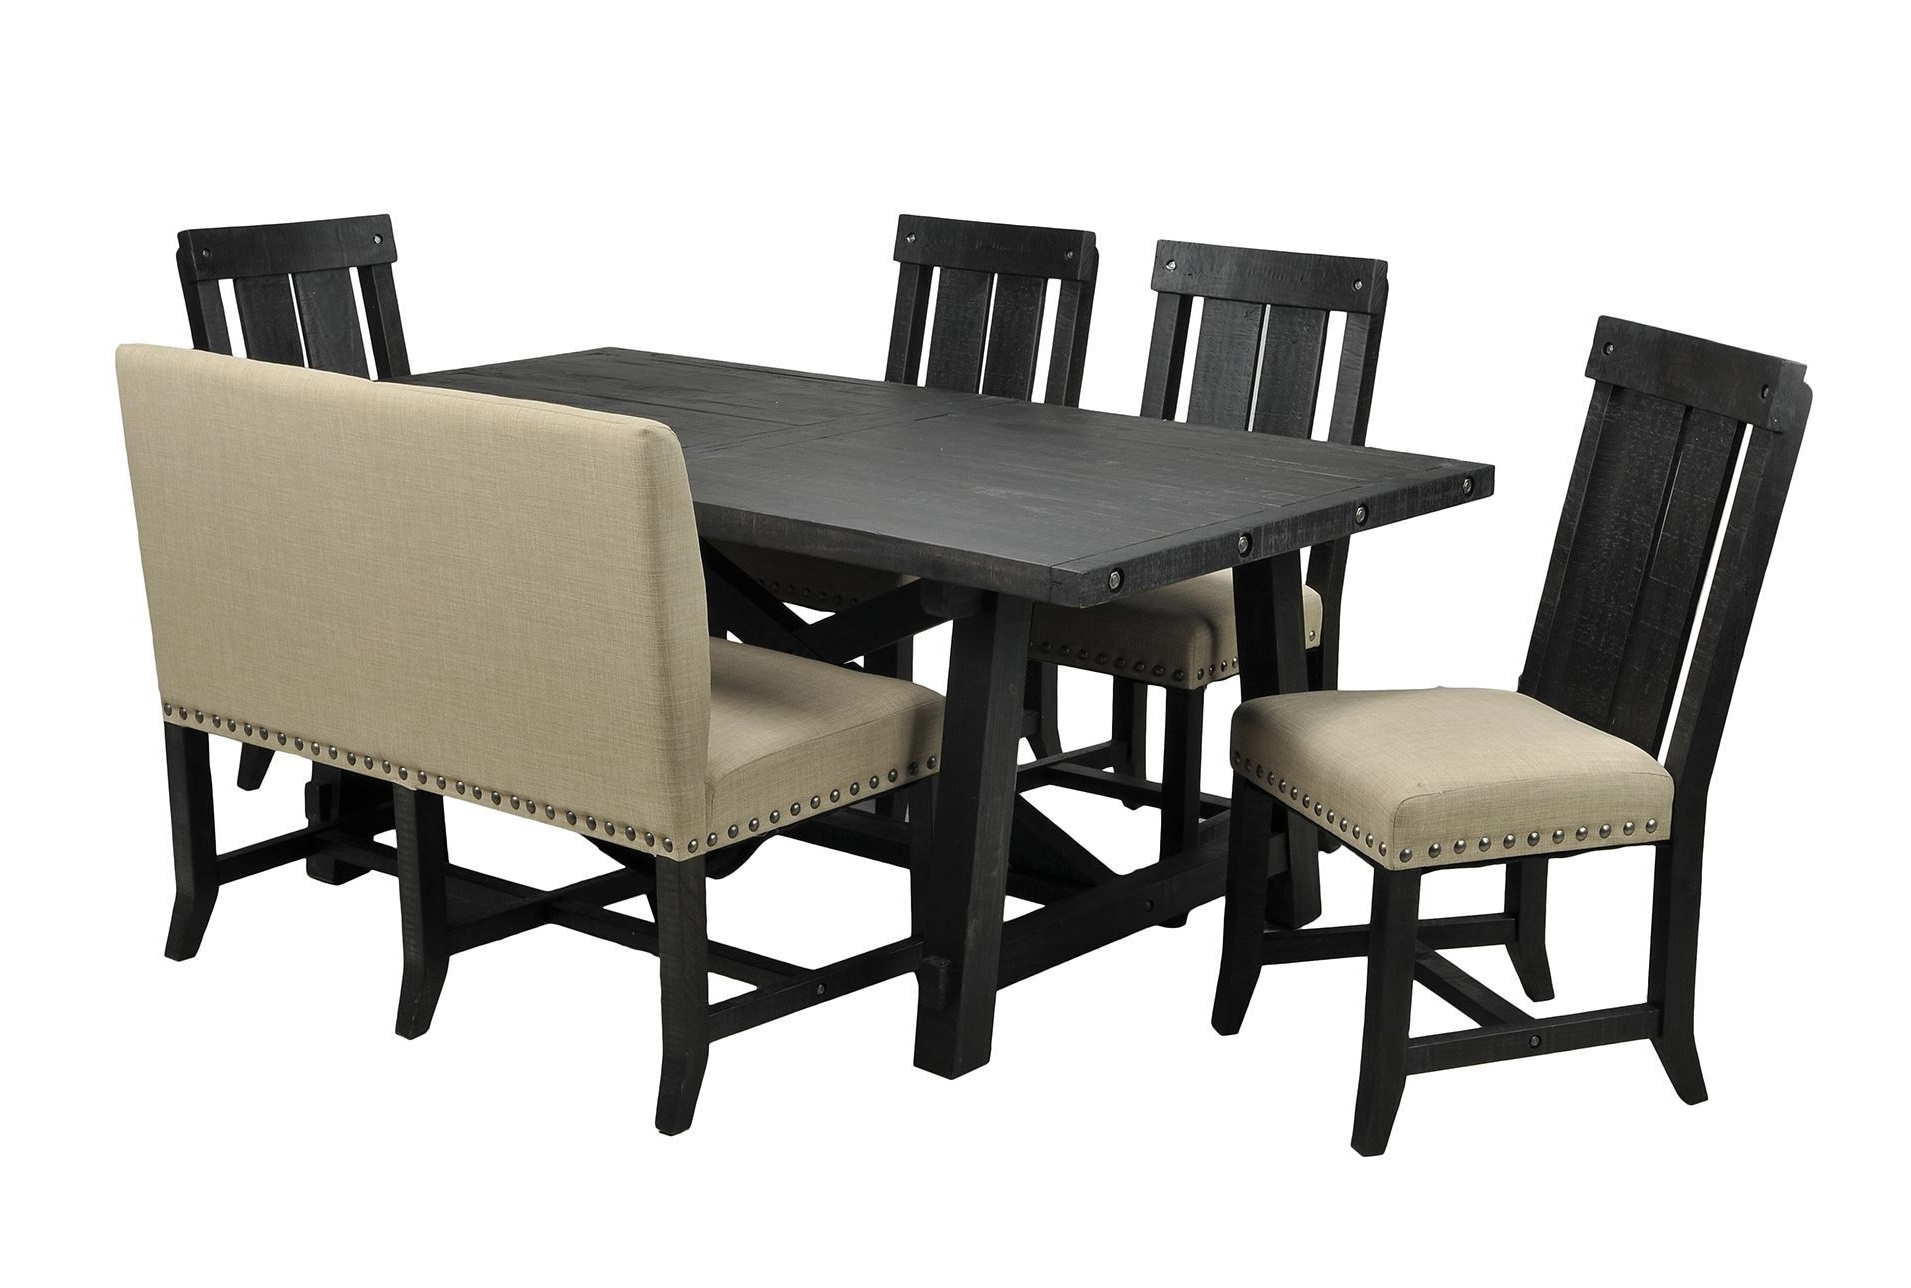 Jaxon 6 Piece Rectangle Dining Set W/bench & Wood Chairs, Café Intended For Current Jaxon Grey 6 Piece Rectangle Extension Dining Sets With Bench & Uph Chairs (View 8 of 25)